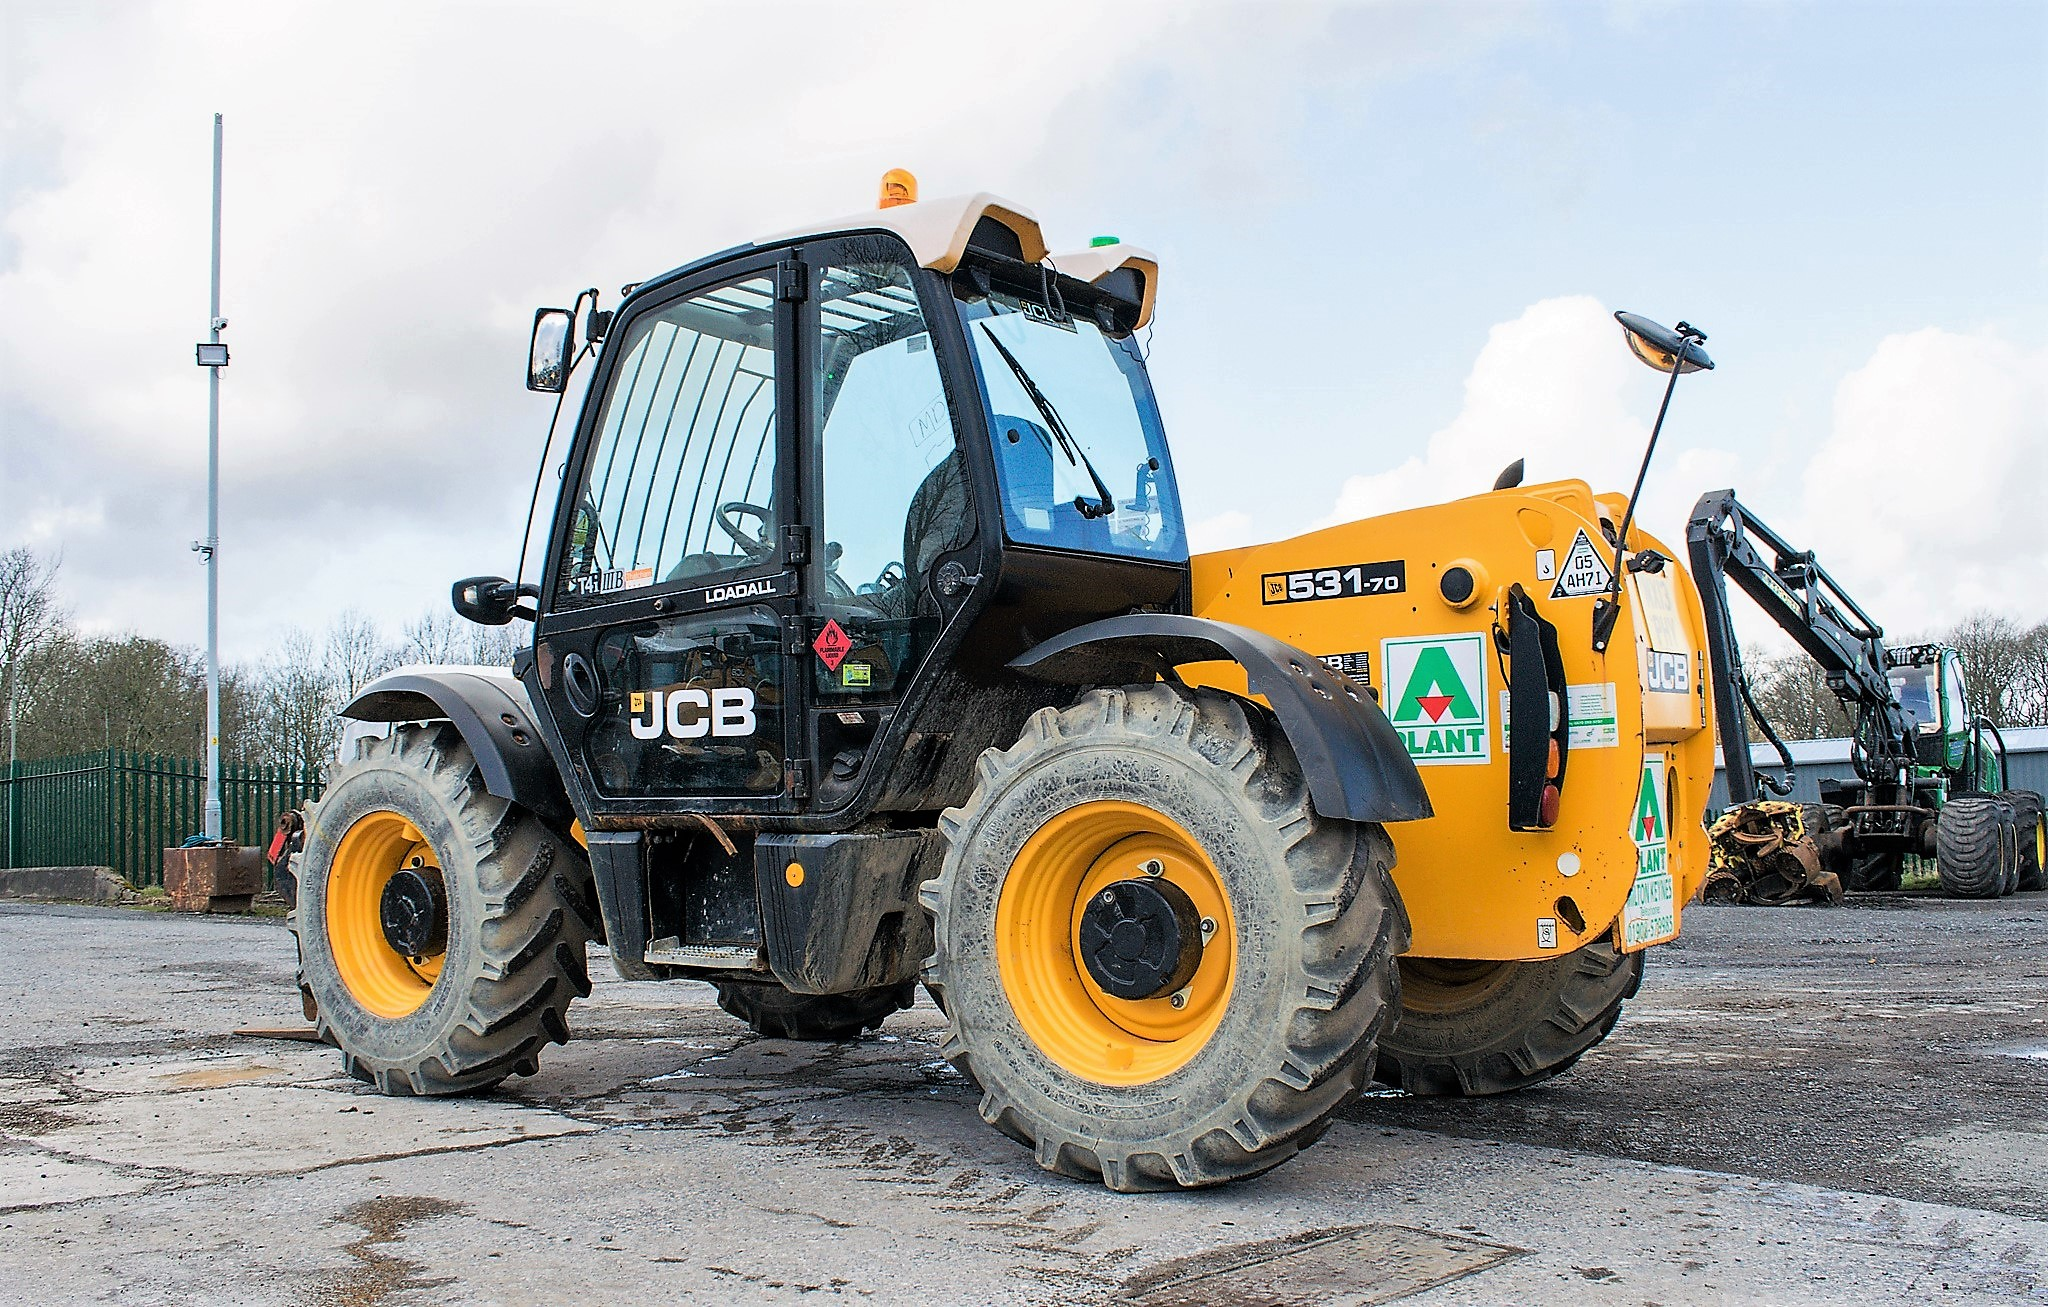 JCB 531-70 7 metre telescopic handler Year: 2013 S/N: 2176575 Reg No: MX13 PHY Recorded Hours: - Image 3 of 19